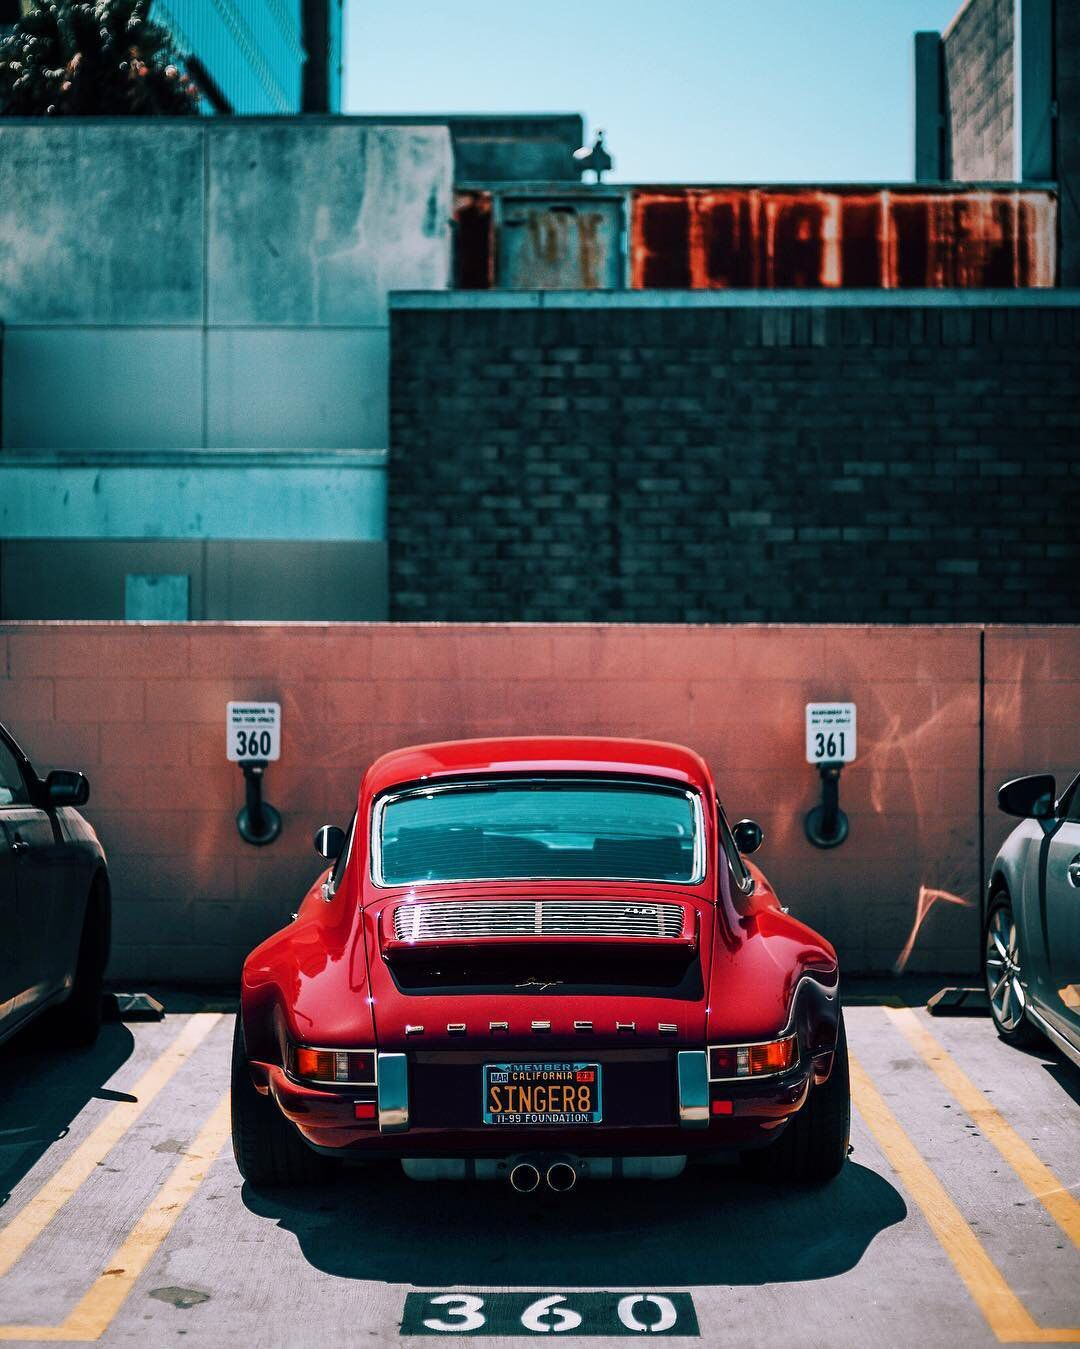 Pin By Andrew Lorenz On Cars I Like Pinterest Cars - Fast car 361